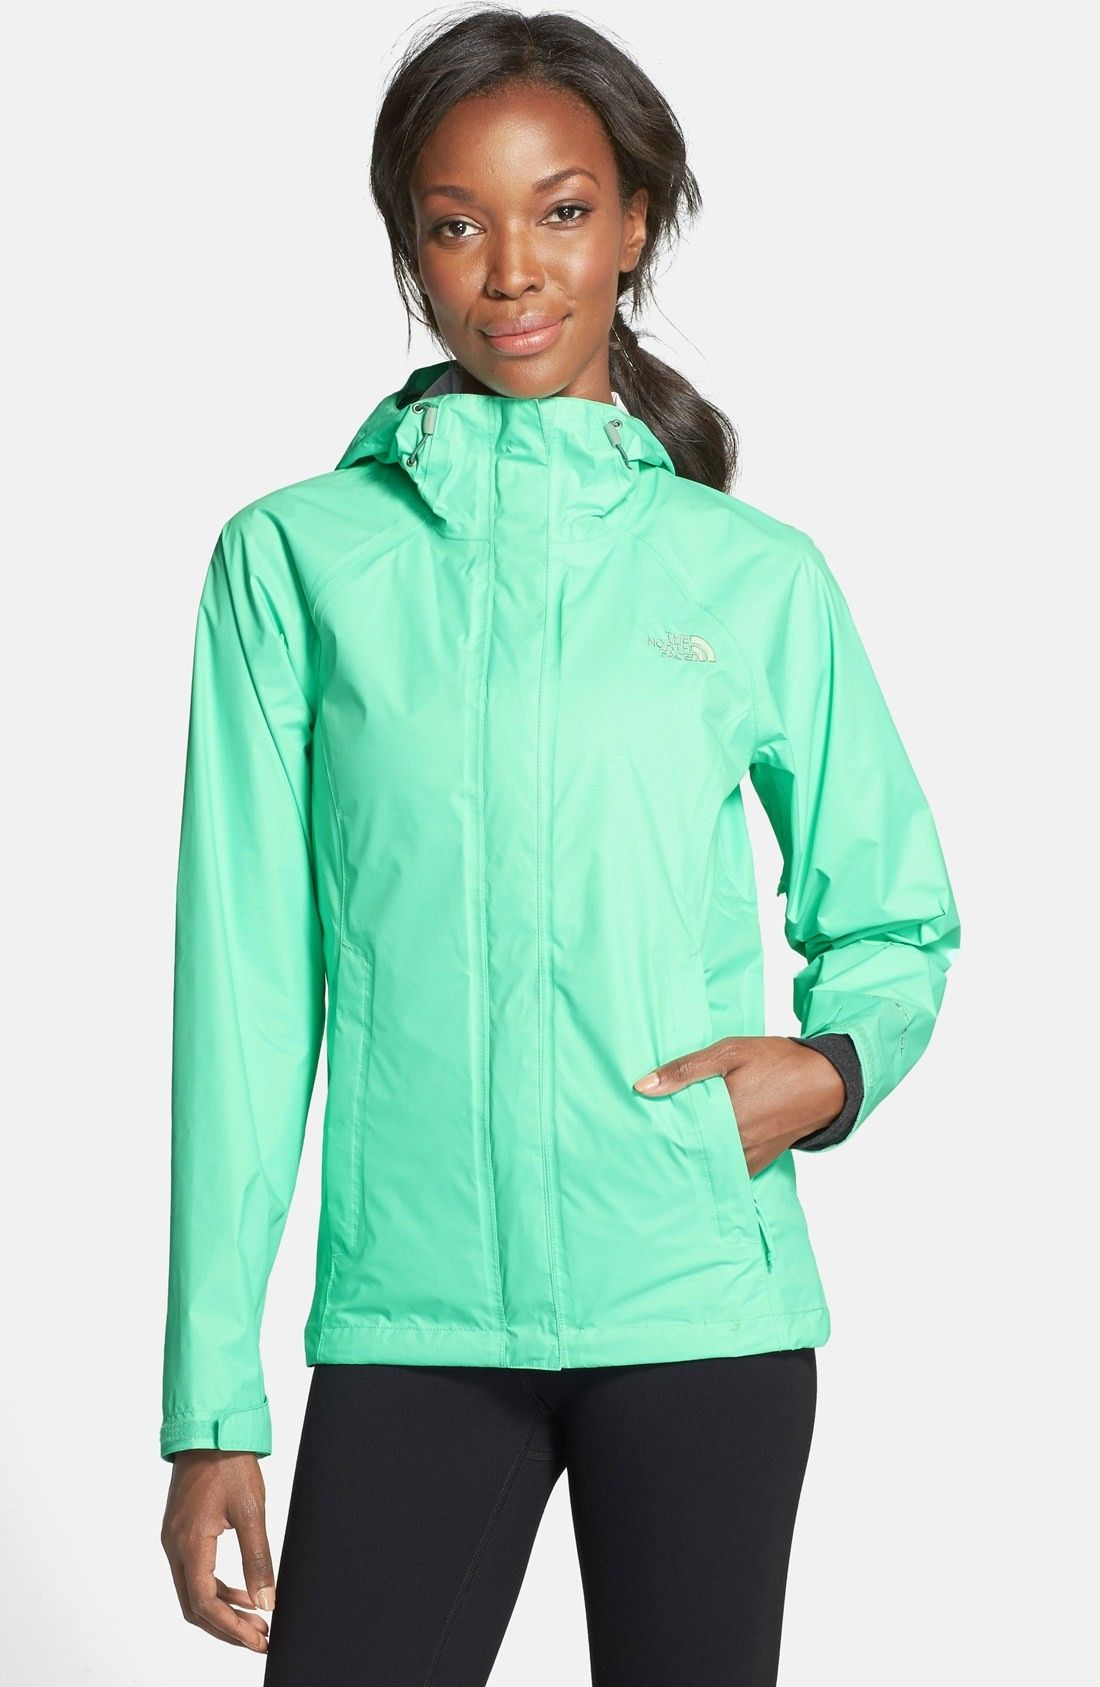 The North Face 'Venture' Jacket | Fzillion.com